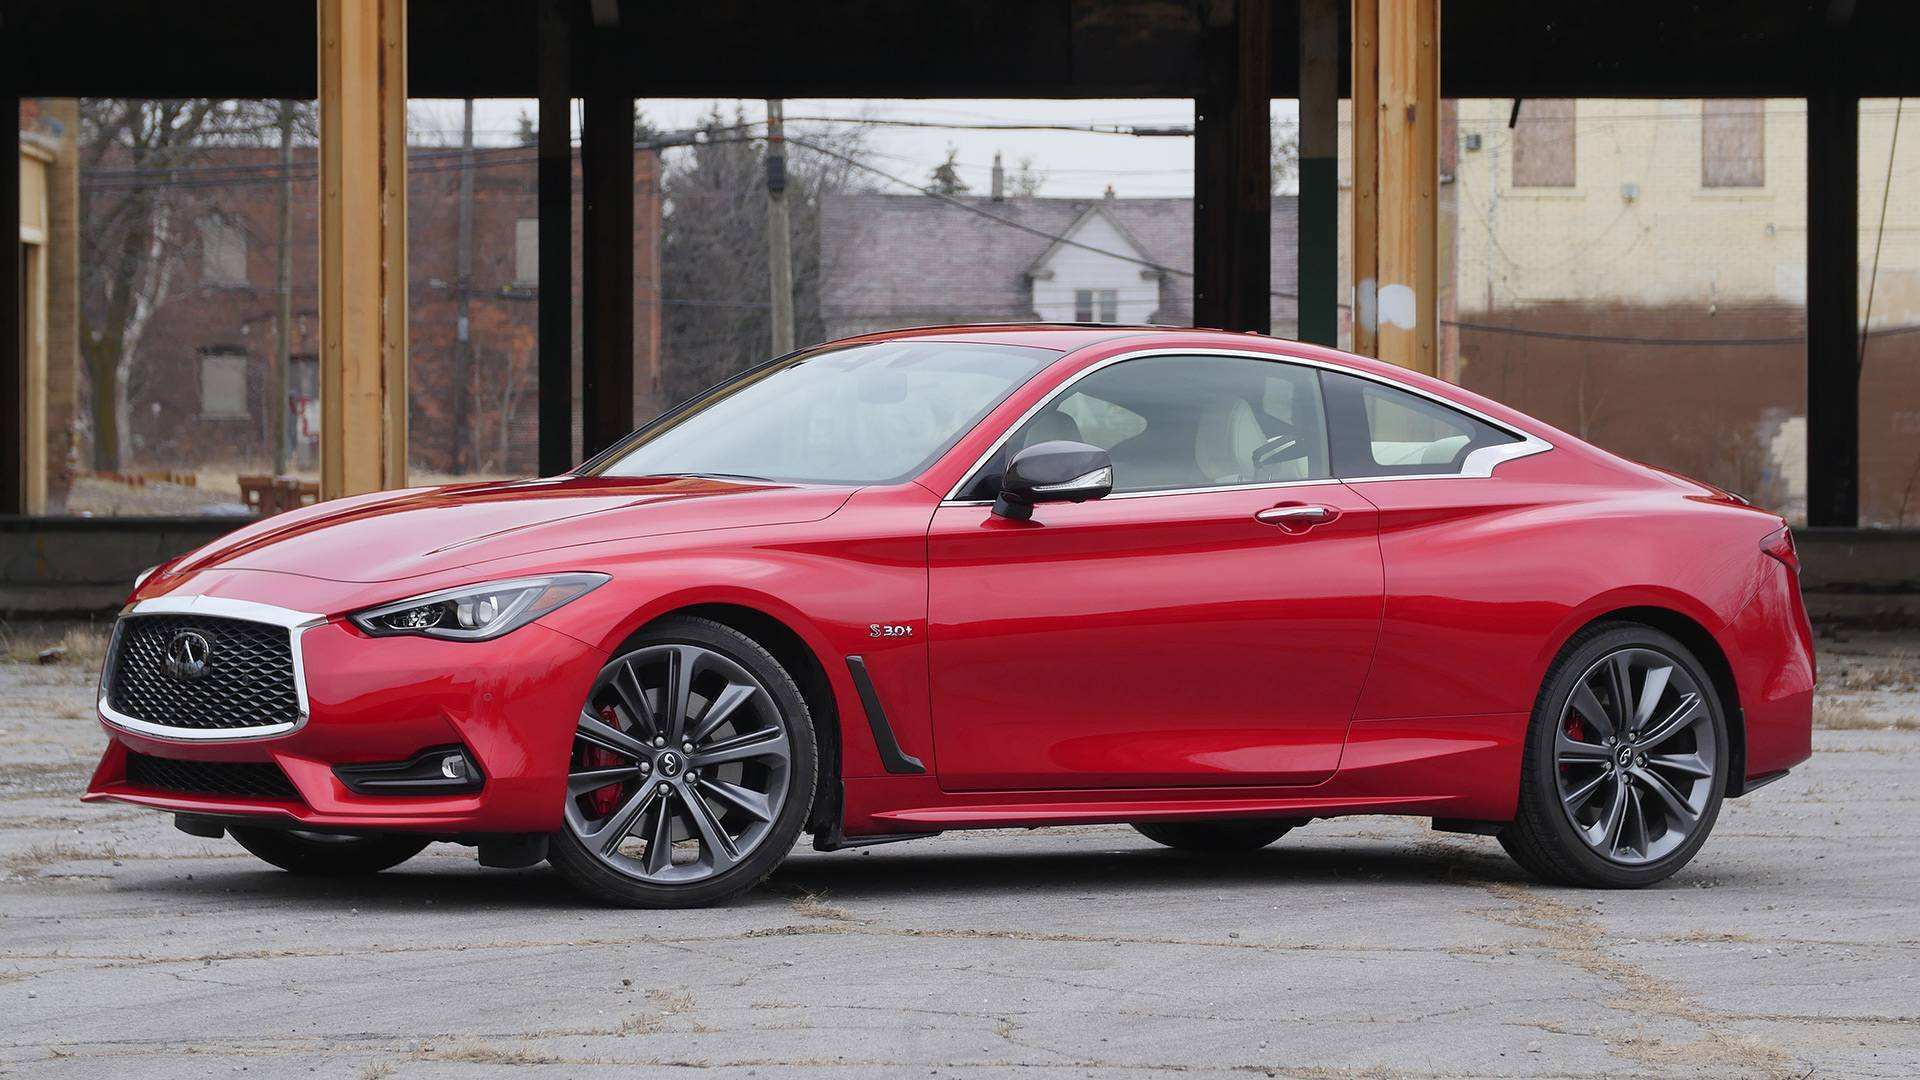 72 The Best 2020 Infiniti Q50 Configurations